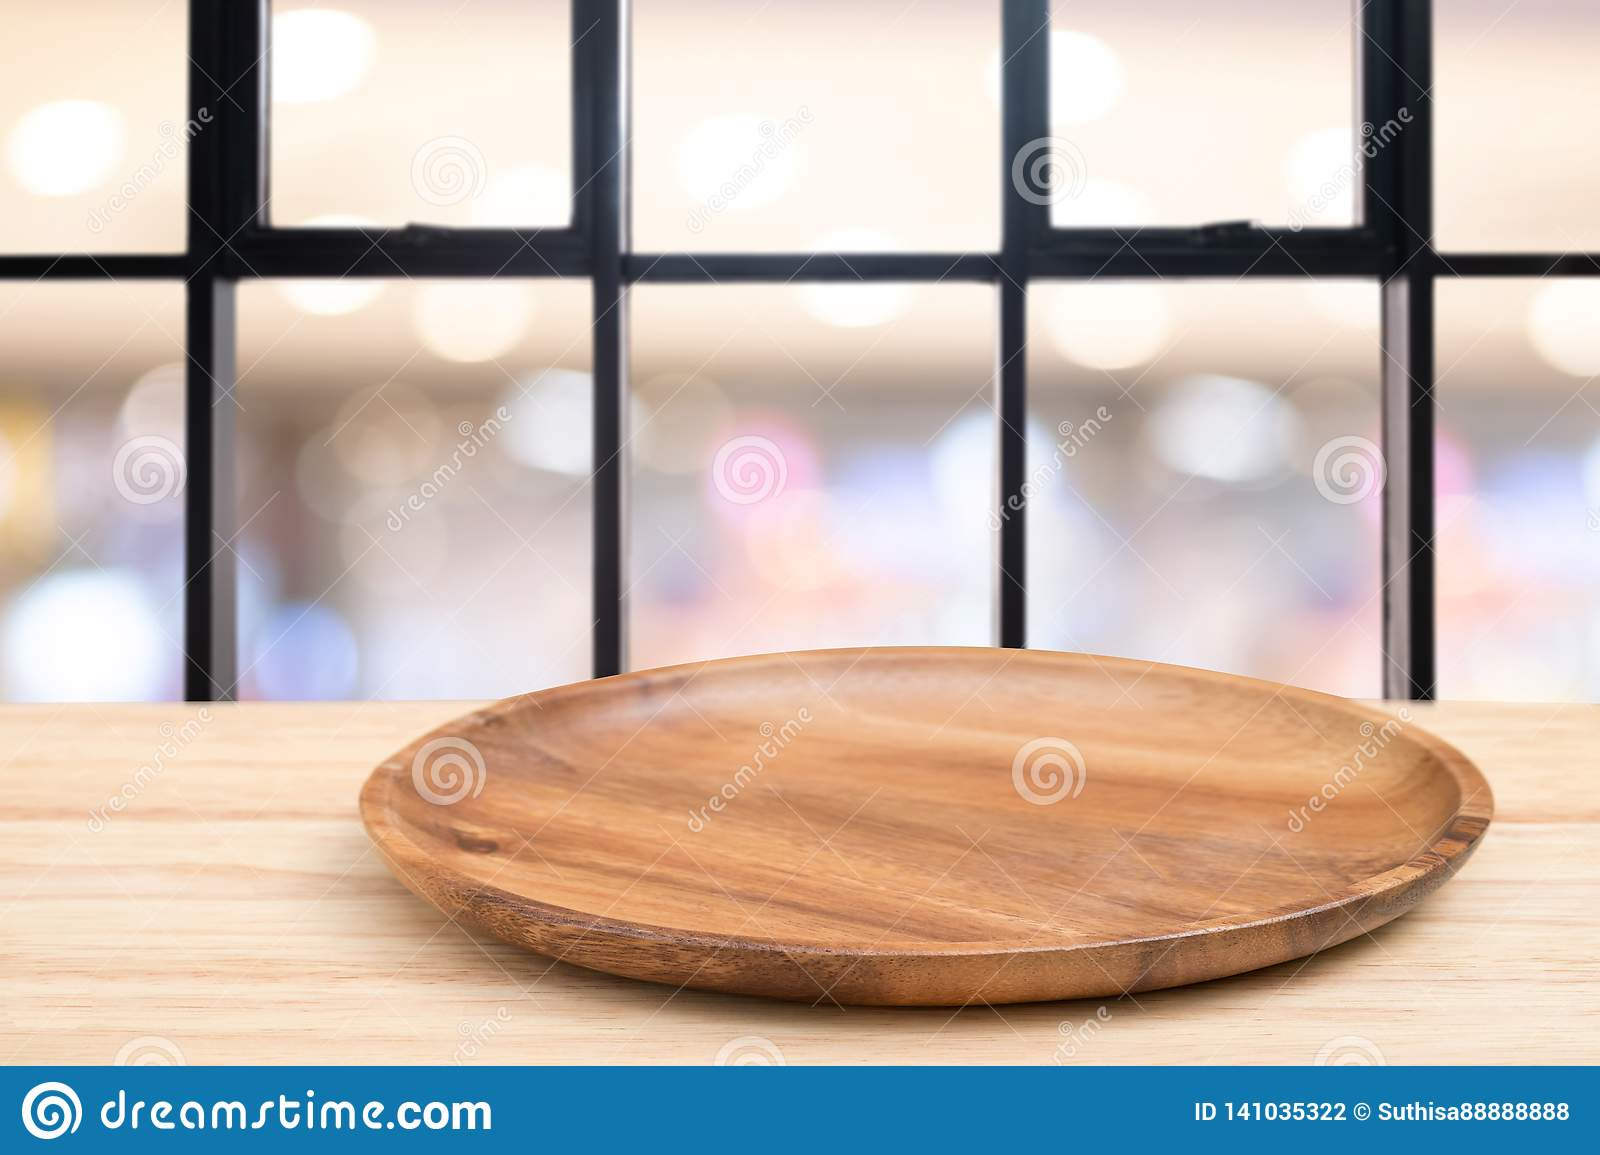 Perspective Wooden Table And Wooden Tray On Top Over Blur Coffee Shop Background Can Be Used Mock Up For Montage Products Display Stock Photo Image Of Kitchen Defocused 141035322